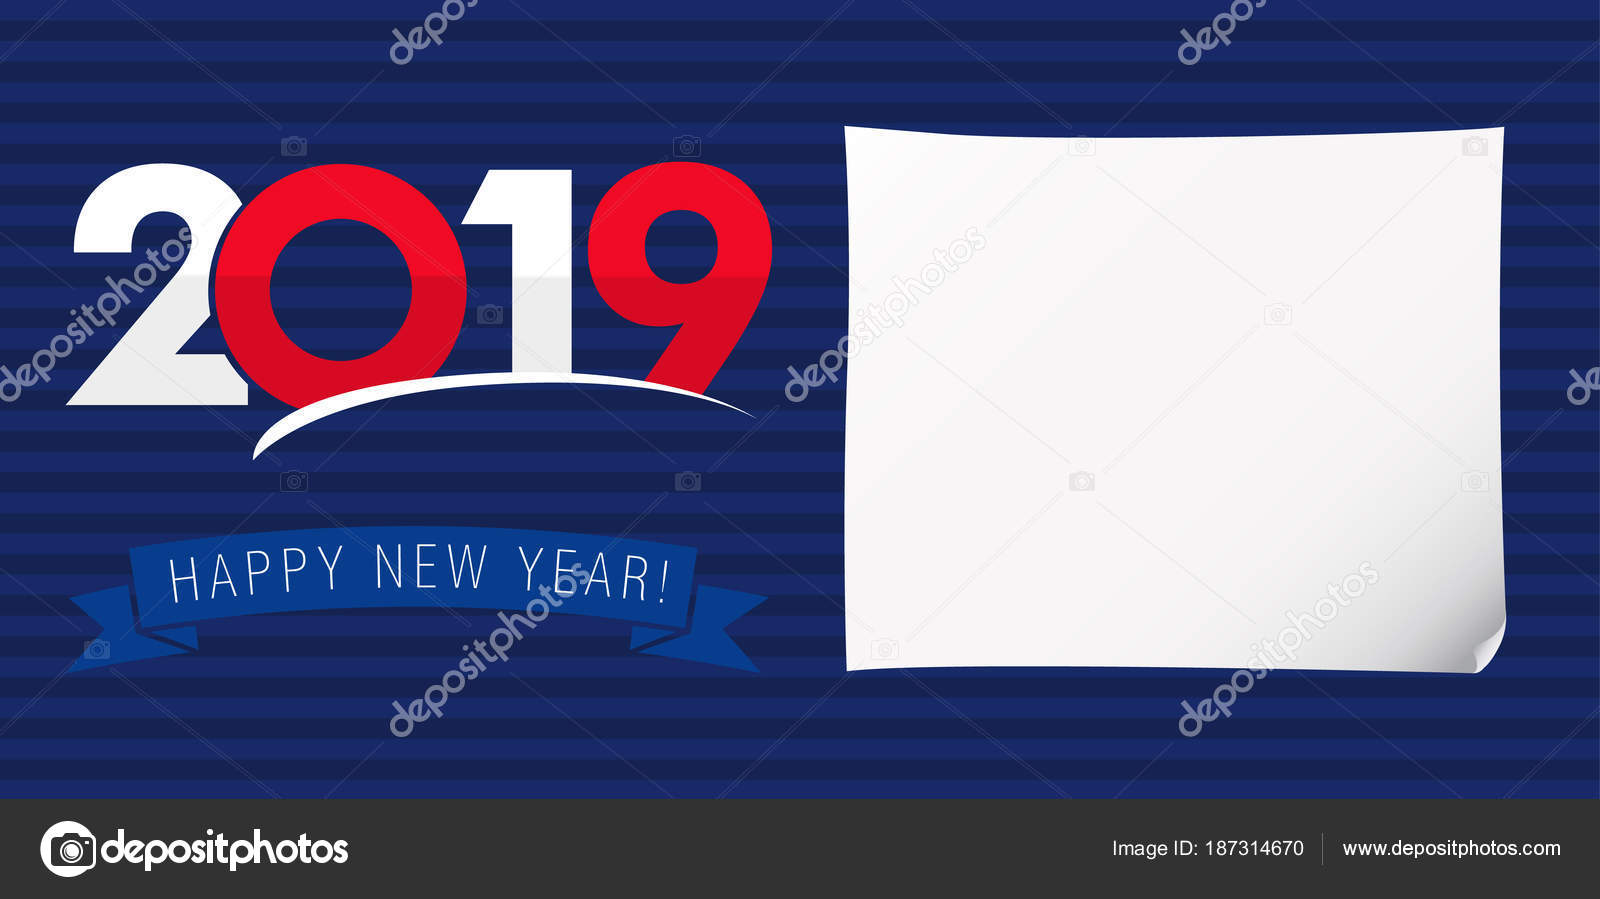 2019 a happy new year xmas greetings dark blue background classic isolated colored numbers seasonal ad with digits percent off discount with white